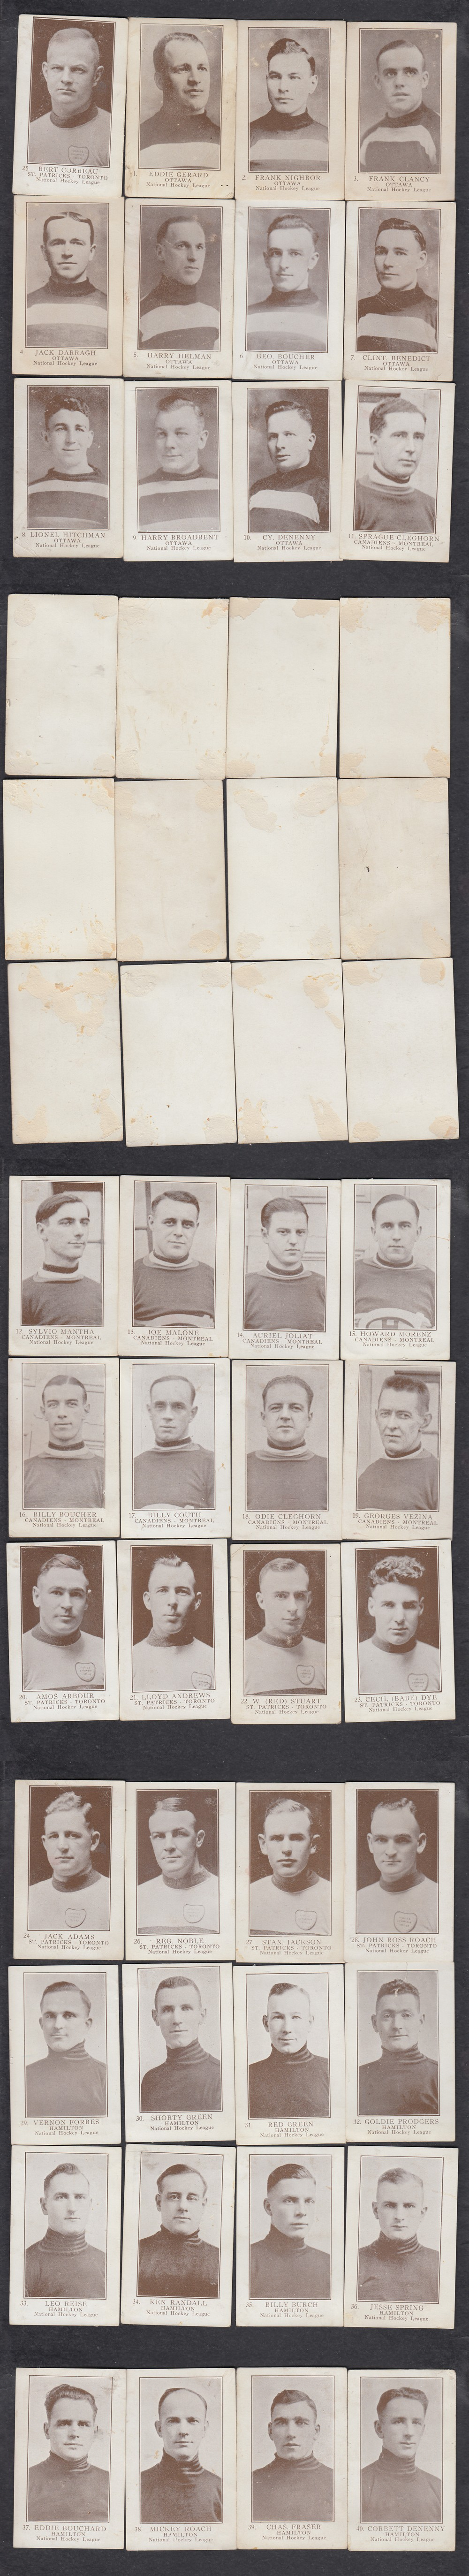 1923-24 WILLIAM PATERSON HOCKEY CARD FULL SET 40/40 INC B. CORBEAU photo